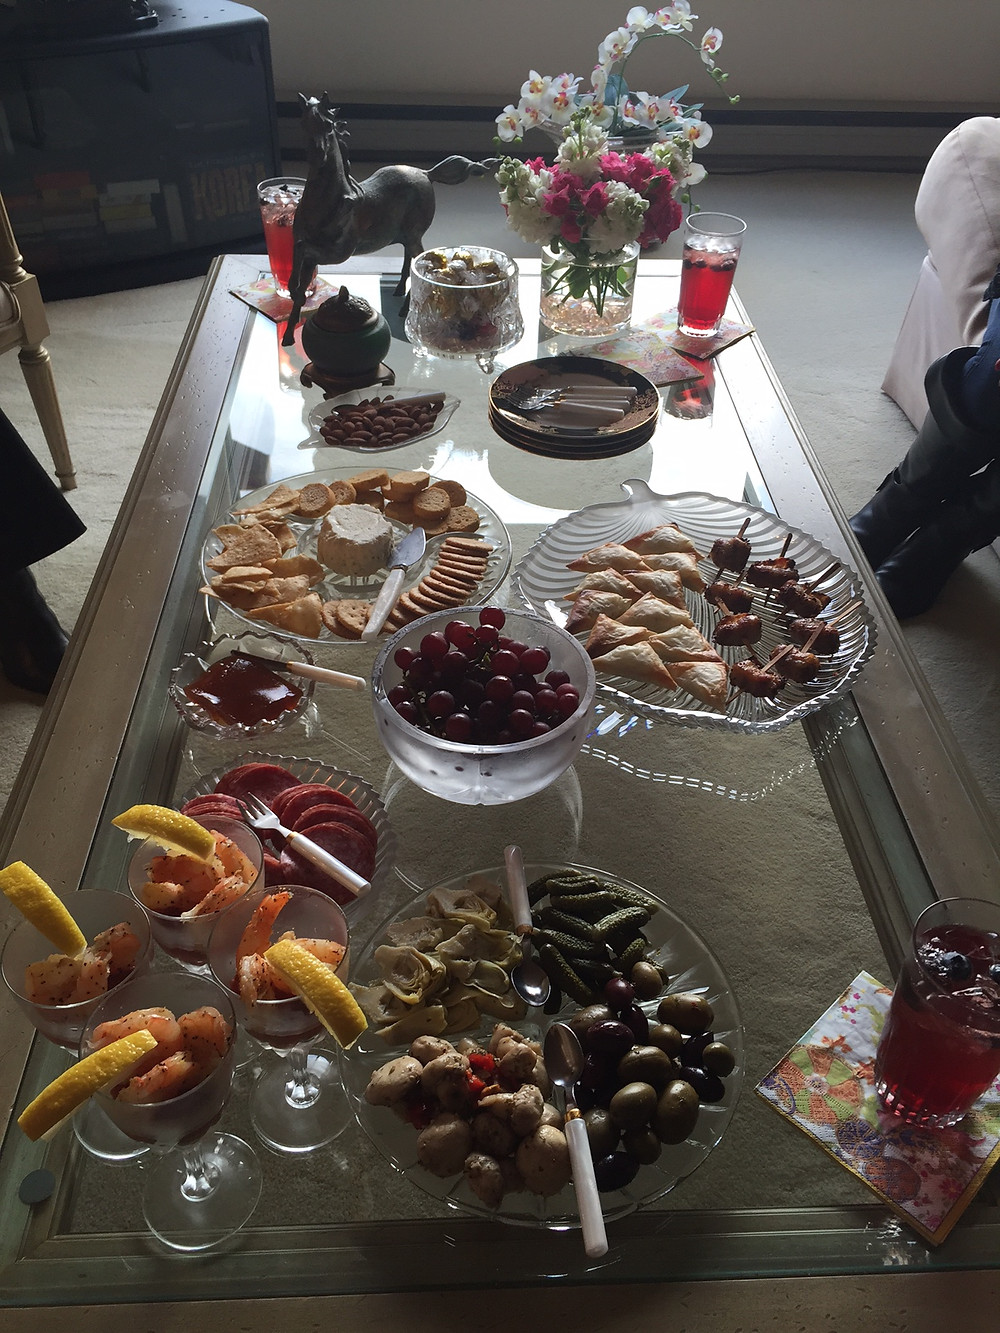 A glass coffee table with appetizers